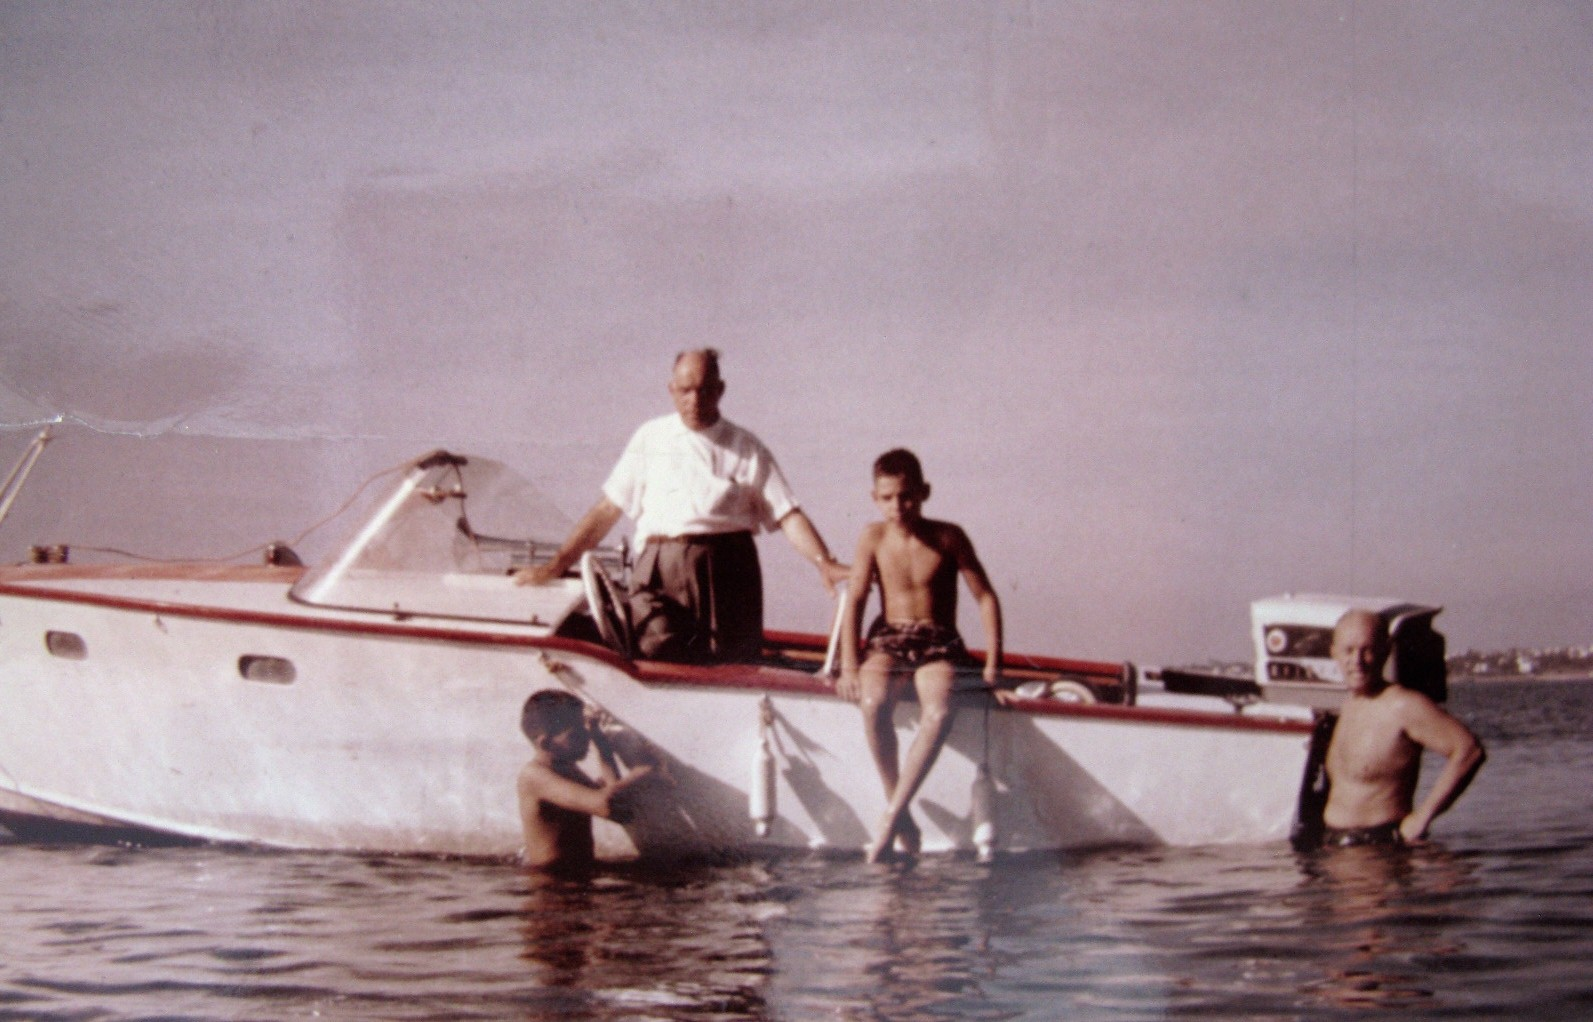 Our Dad with Nikos and Byron and a friend